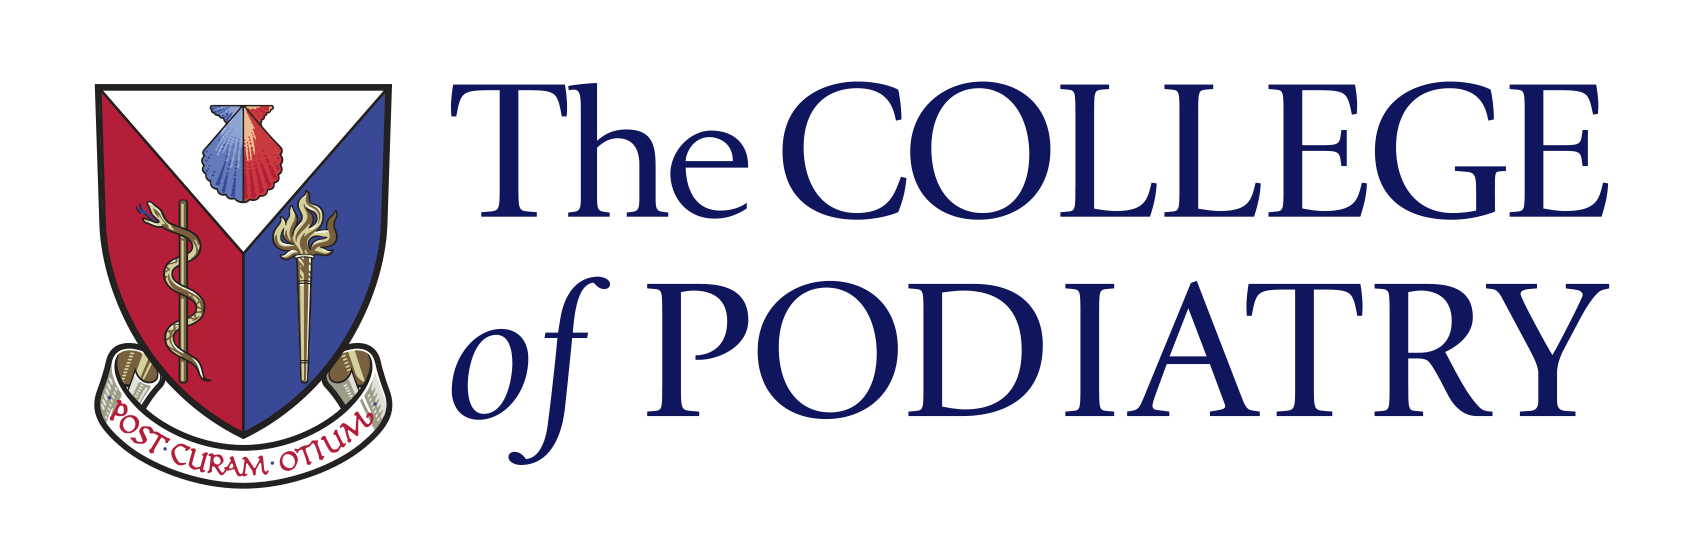 colege of podiatry